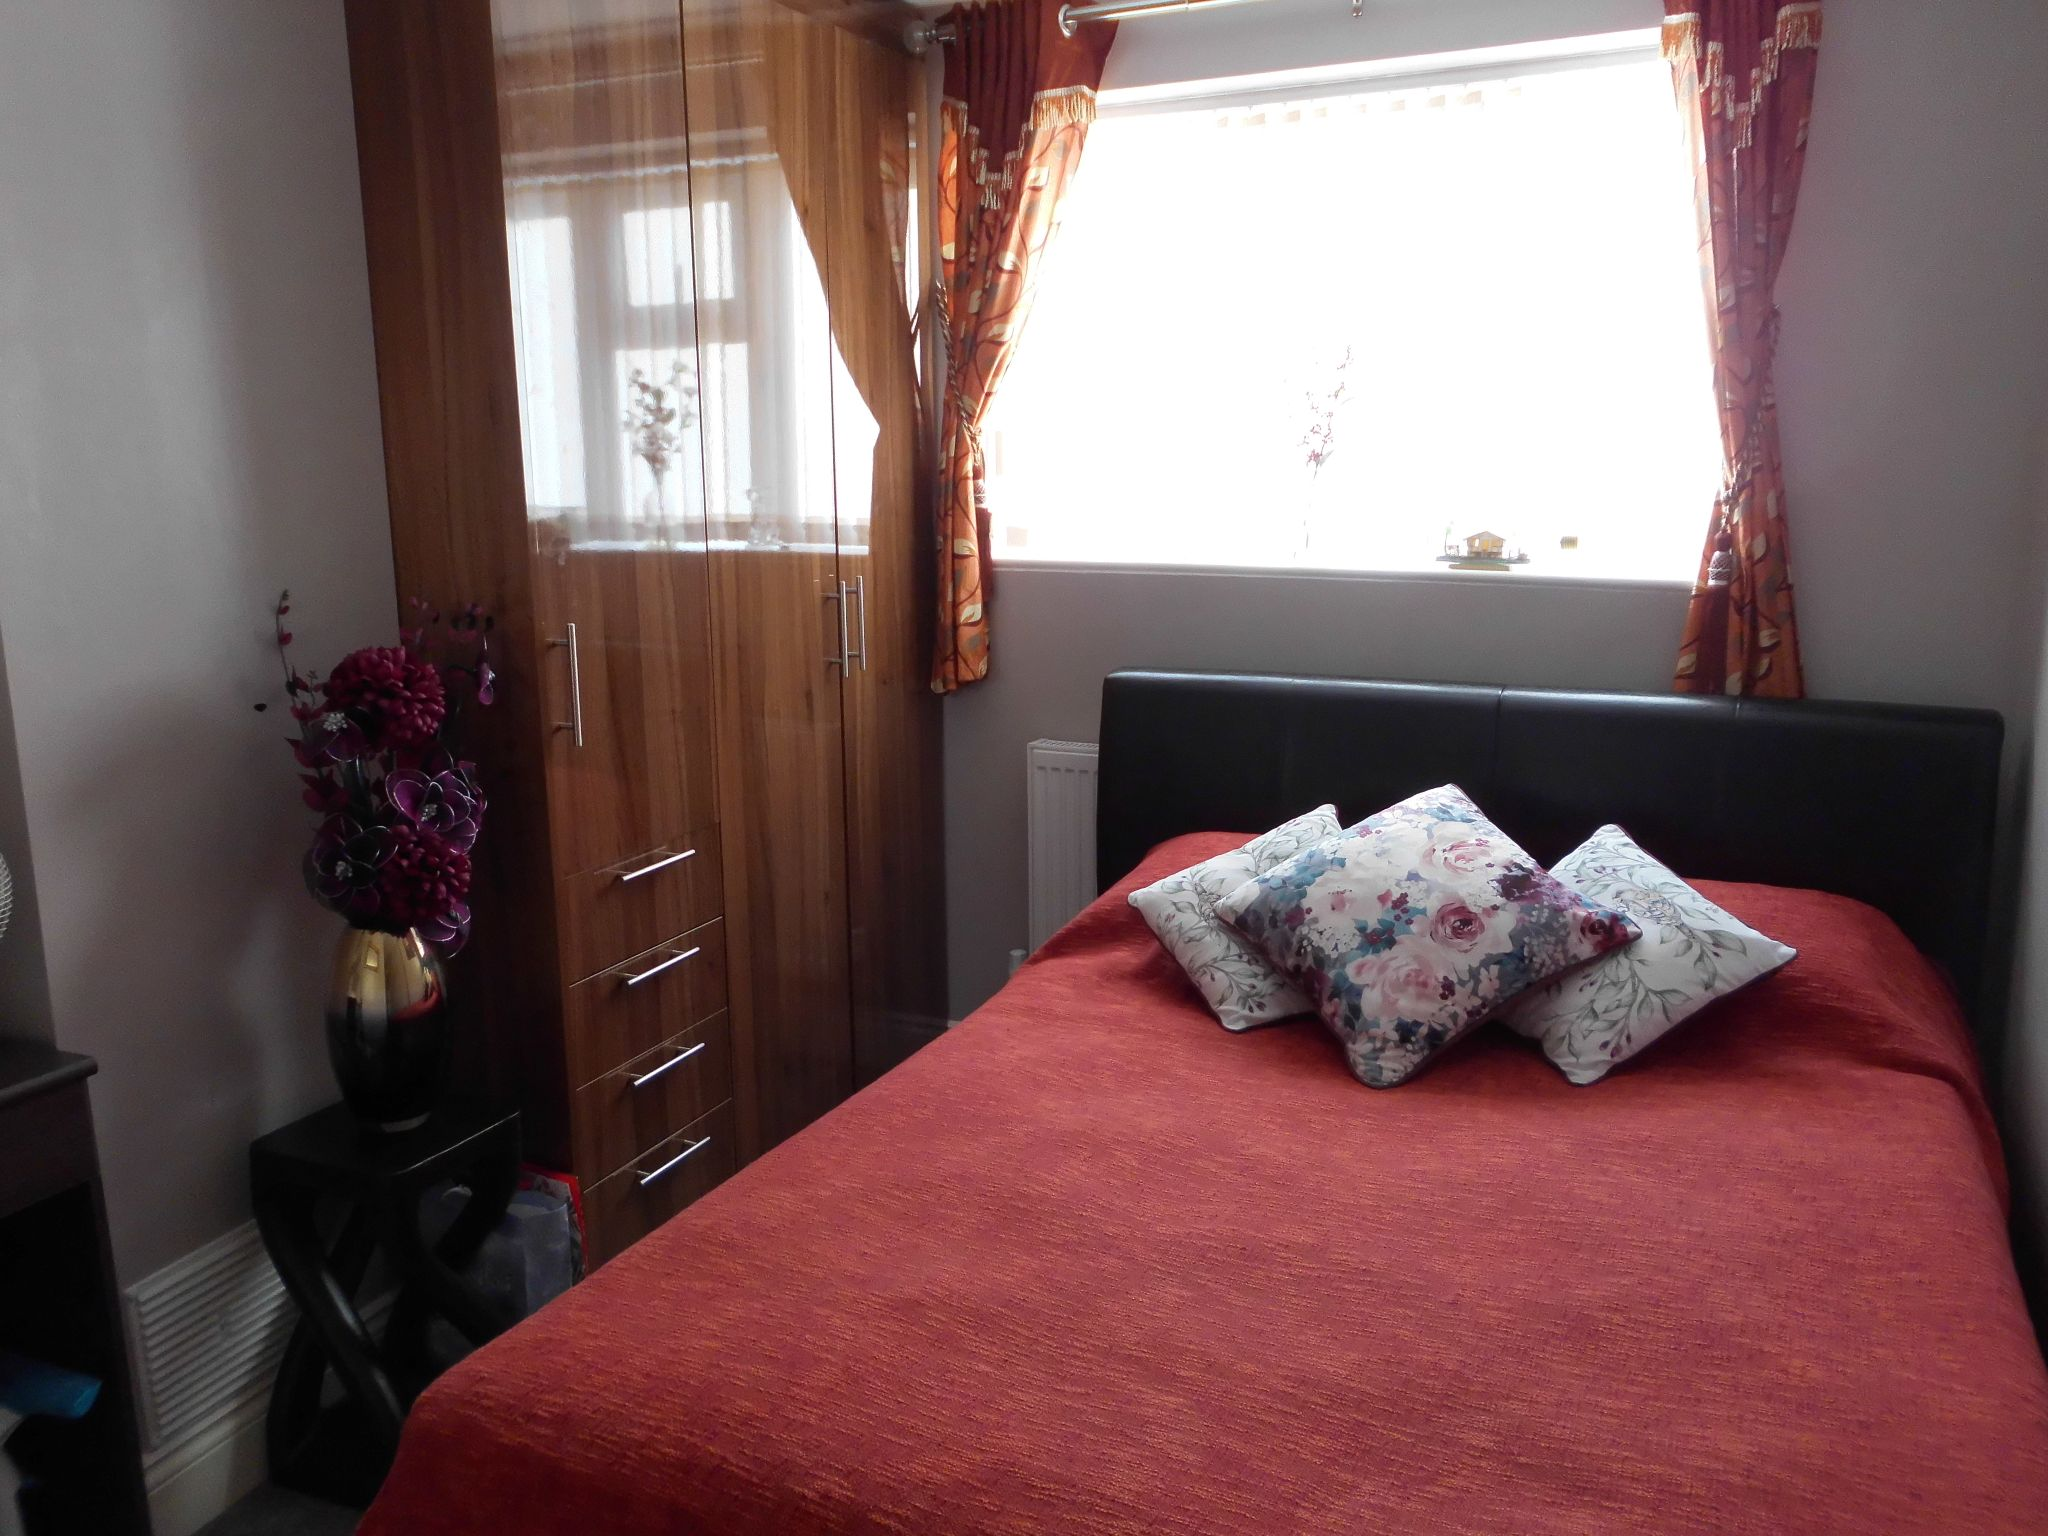 3 bedroom semi-detached house For Sale in Leicester - Photograph 5.